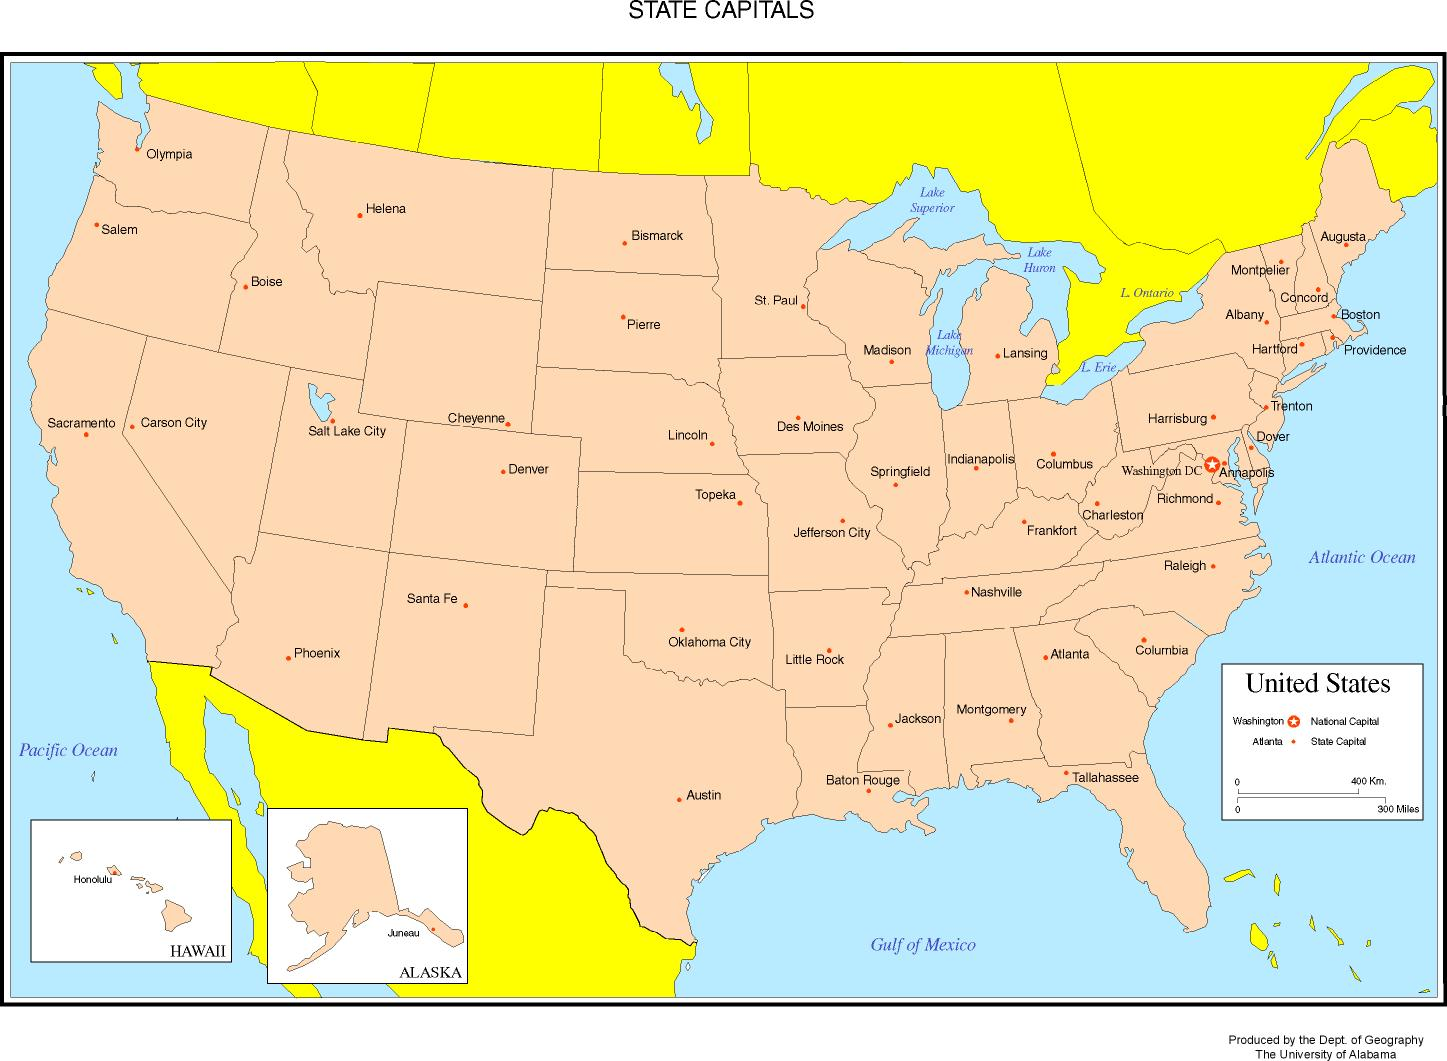 Maps Of The United States - Us-map-of-the-50-states